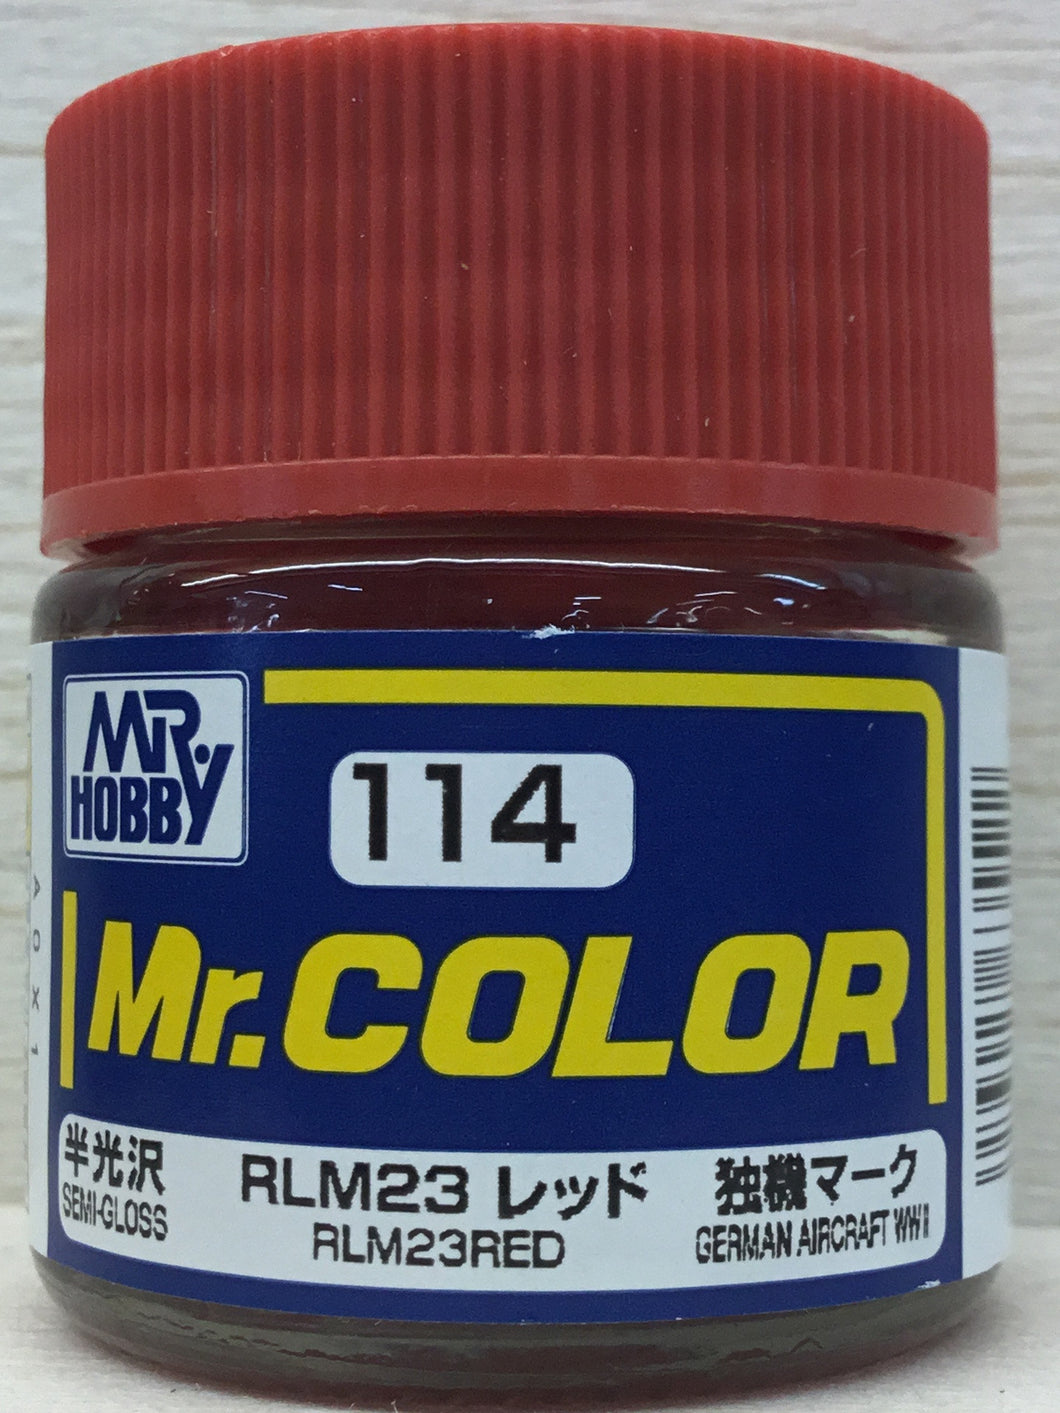 GUNZE MR COLOR C114 SEMI GLOSS RLM 23 RED